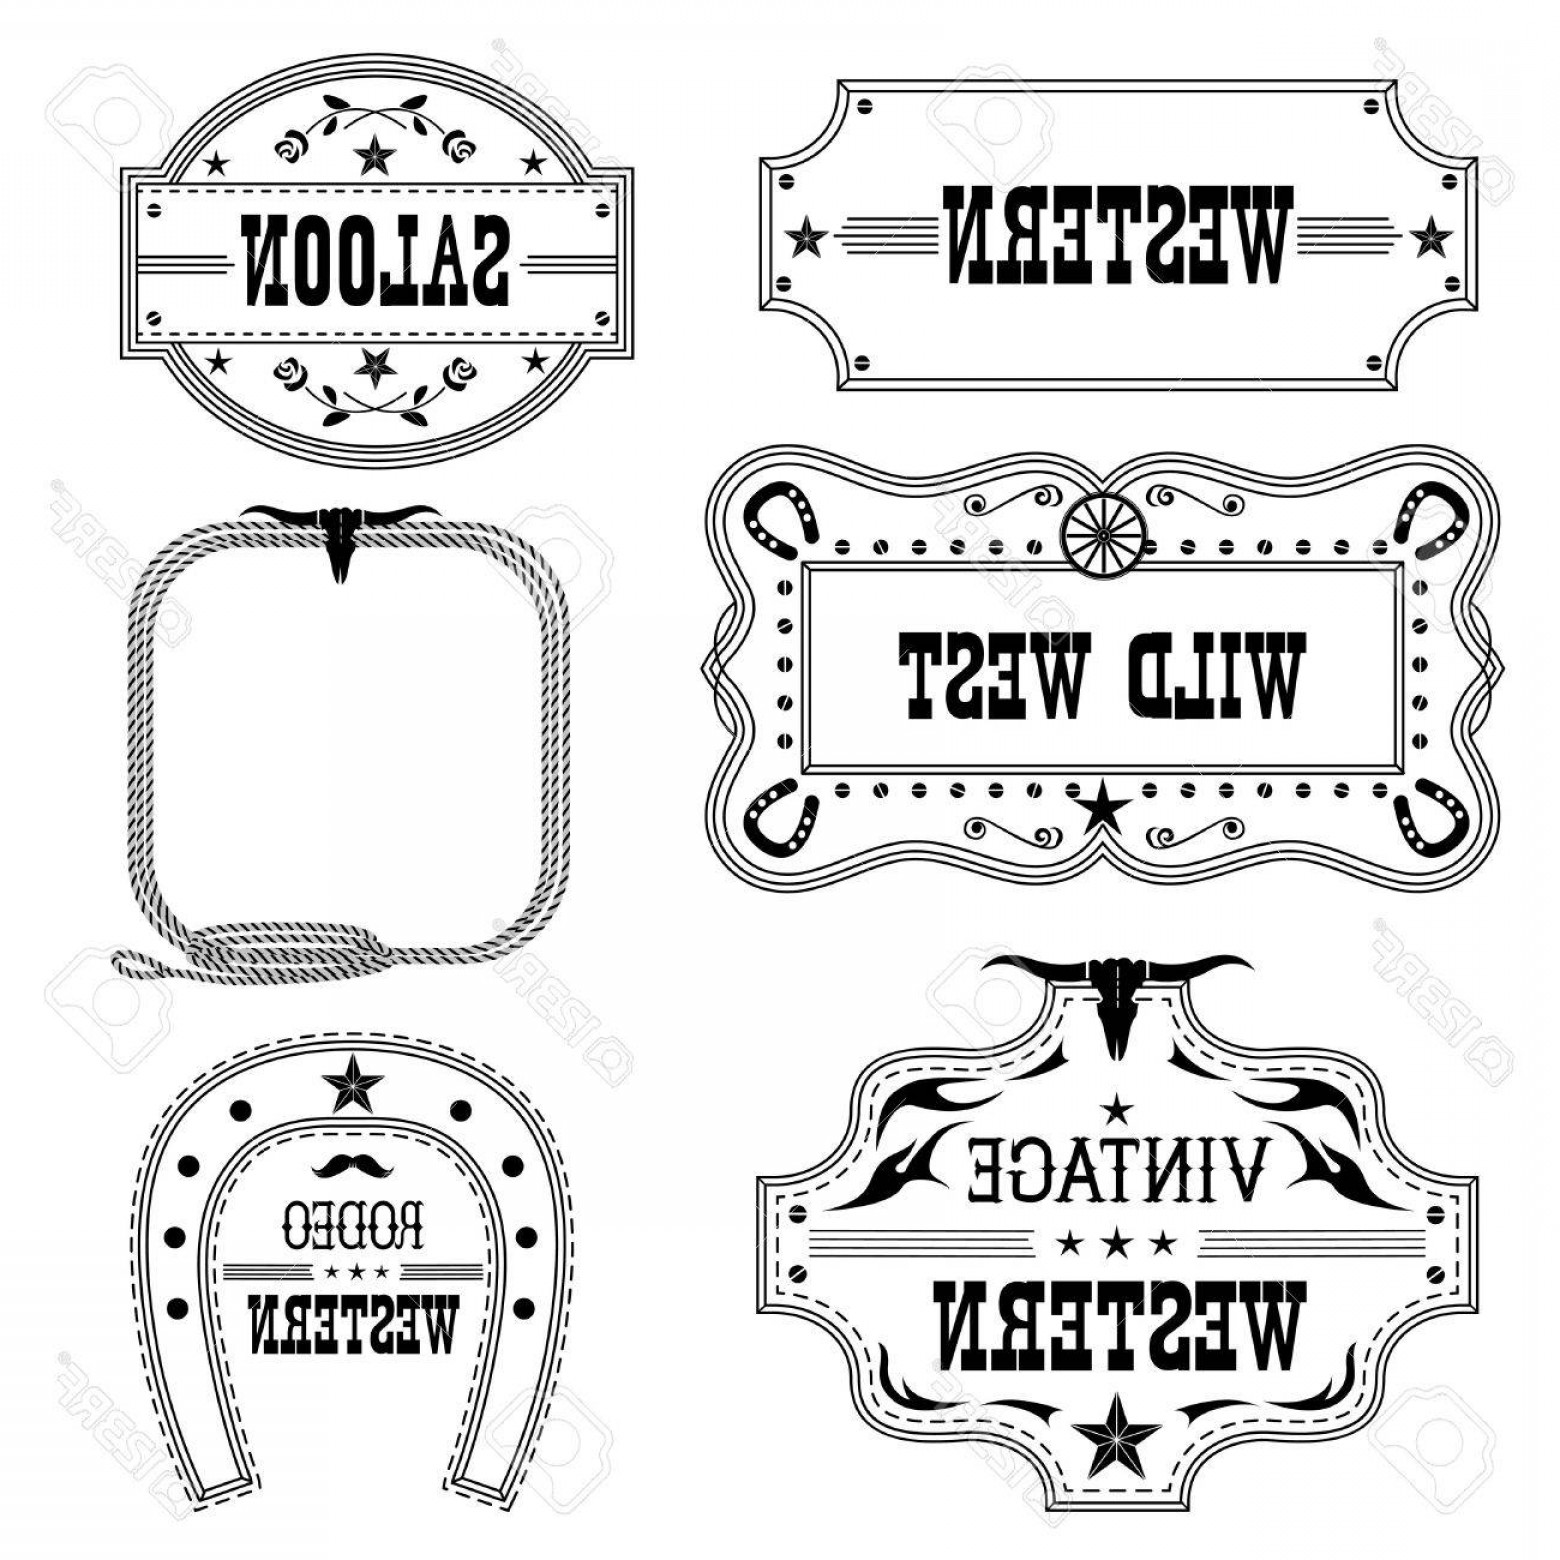 Antique Frames Vector: Photostock Vector Western Vintage Labels Isolated On White For Design Vector Antique Frames With Text